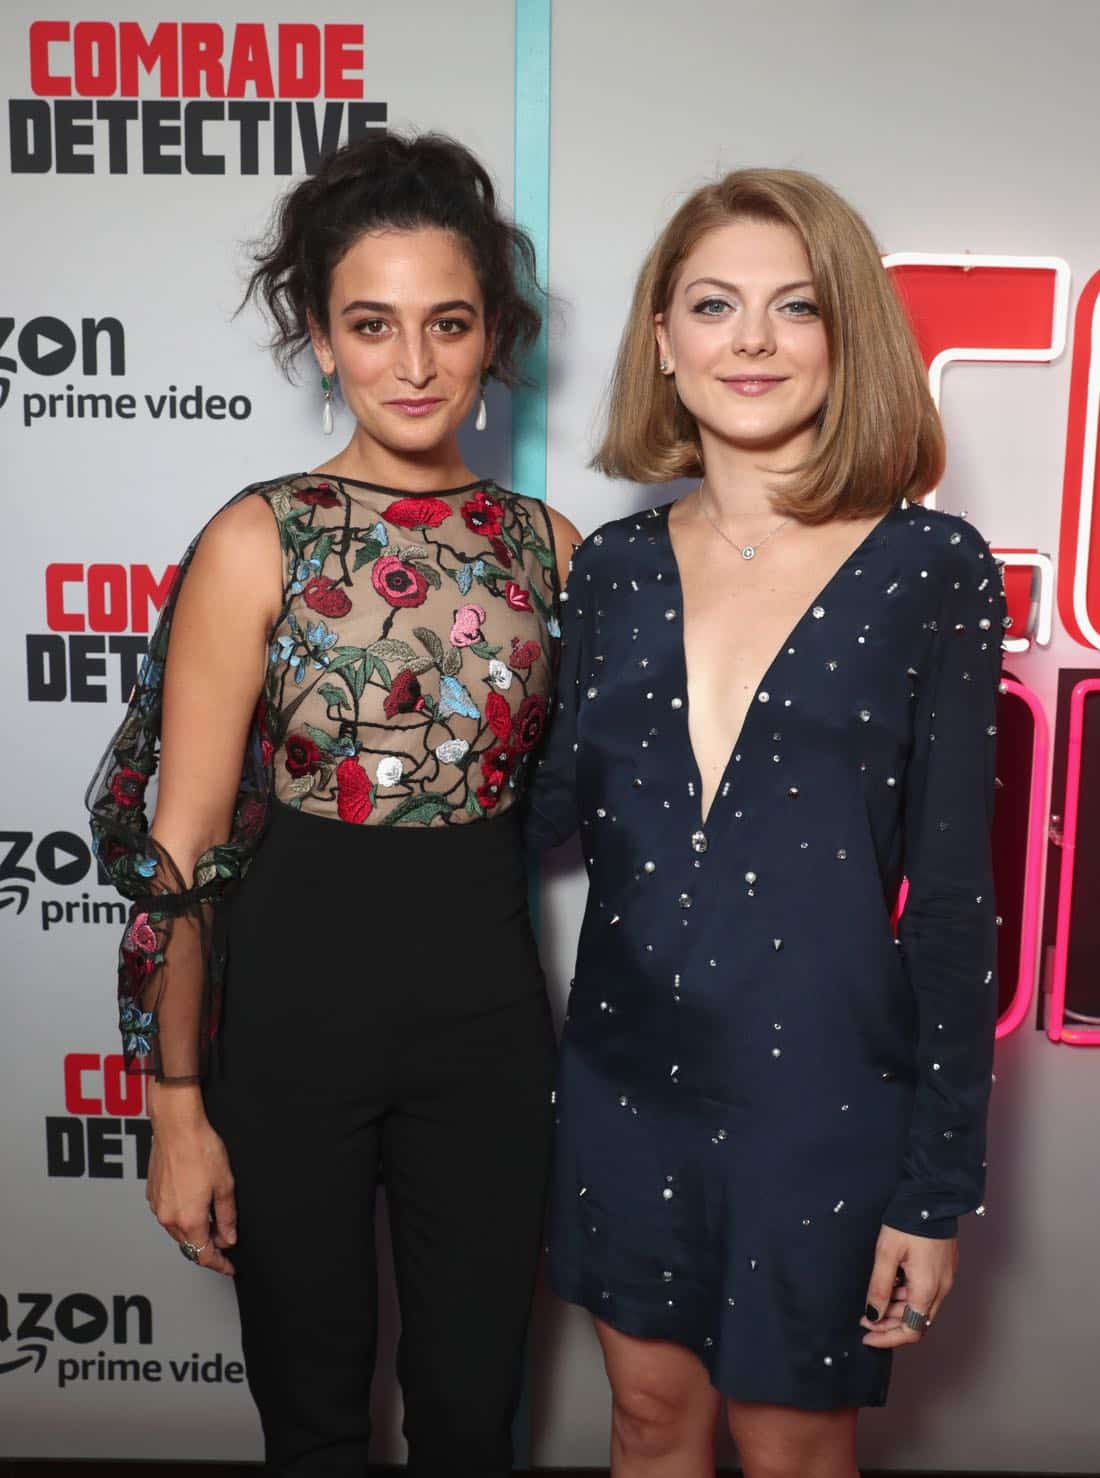 "LOS ANGELES, CA - AUGUST 03: Actors Jenny Slate (L) and Olivia Nita attend Amazon Prime Video Premiere Of Original Comedy Series ""Comrade Detective"" In Los Angeles on August 3, 2017 in Los Angeles, California. (Photo by Todd Williamson/Getty Images for Amazon Studios)"